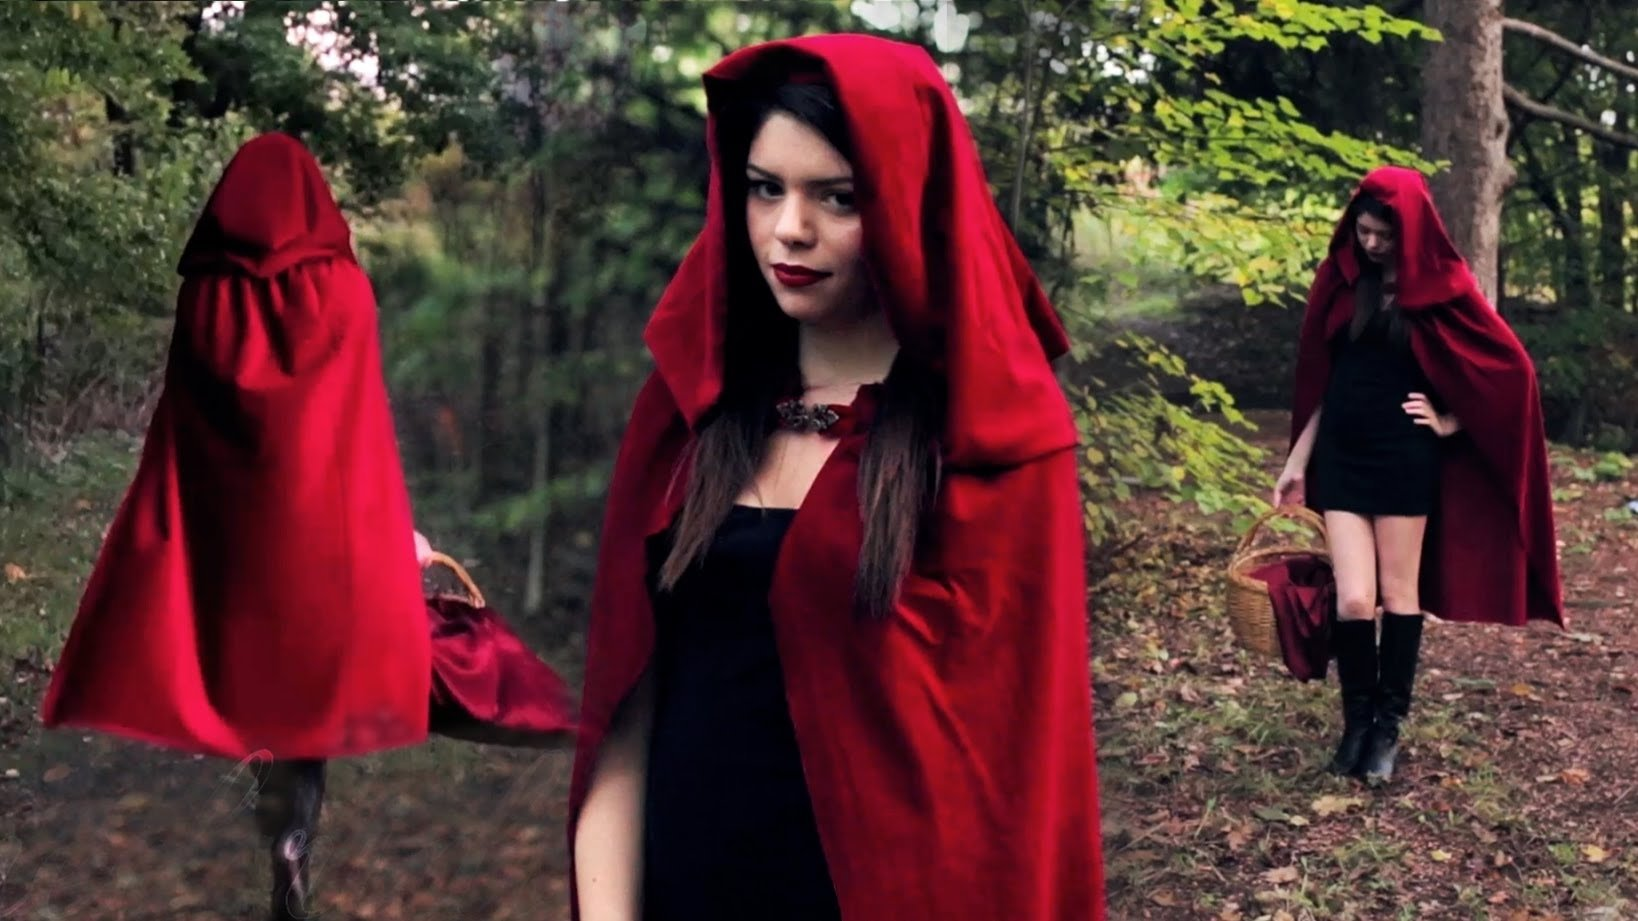 10 Pretty Little Red Riding Hood Costume Ideas diy little red riding hood costume youtube 1 2021